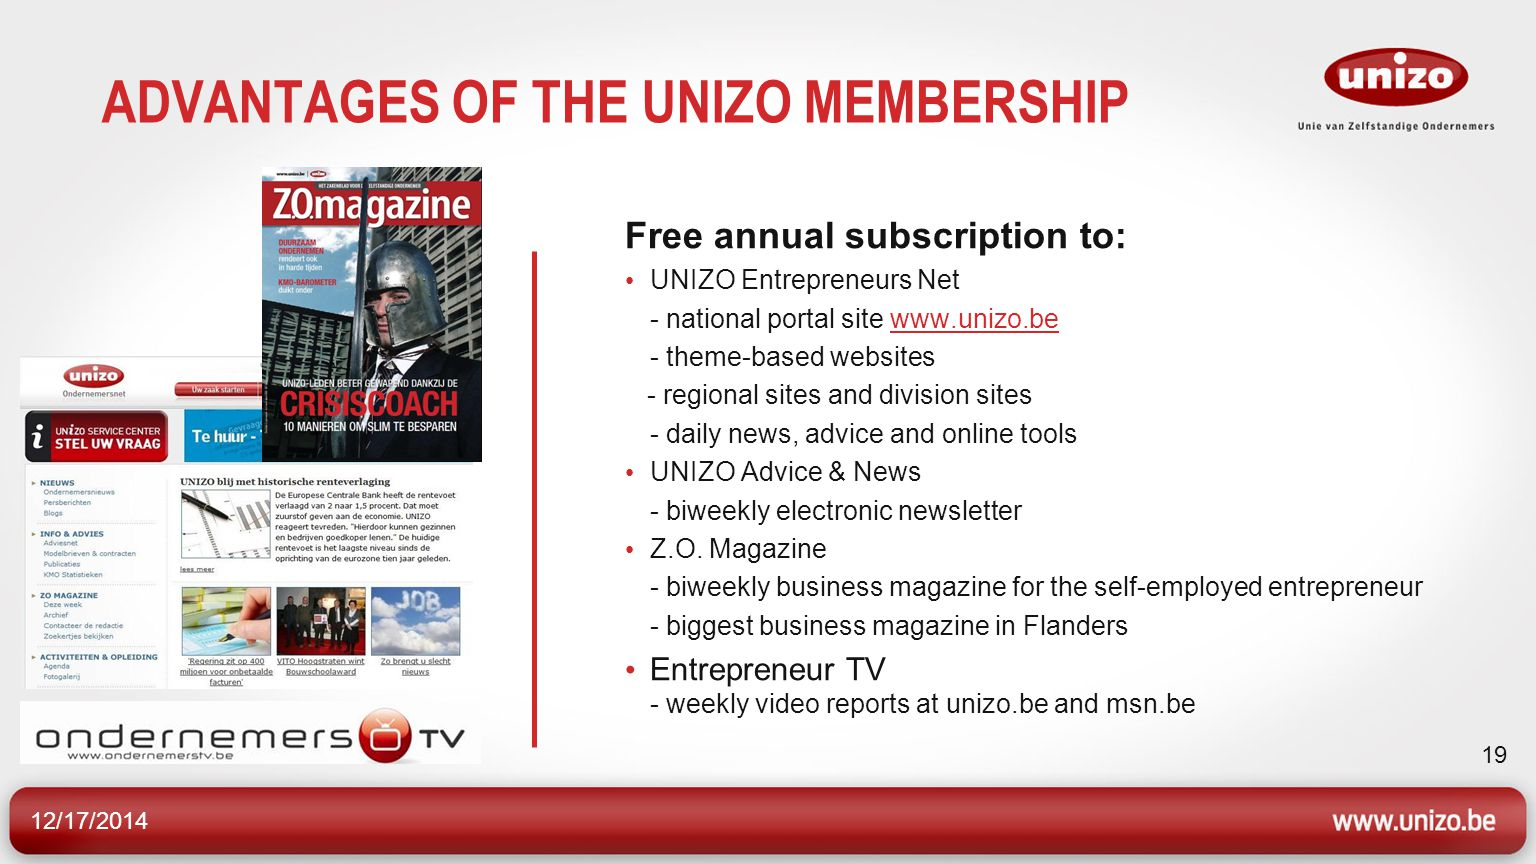 12/17/2014 19 ADVANTAGES OF THE UNIZO MEMBERSHIP Free annual subscription to: UNIZO Entrepreneurs Net - national portal site www.unizo.bewww.unizo.be - theme-based websites - regional sites and division sites - daily news, advice and online tools UNIZO Advice & News - biweekly electronic newsletter Z.O.